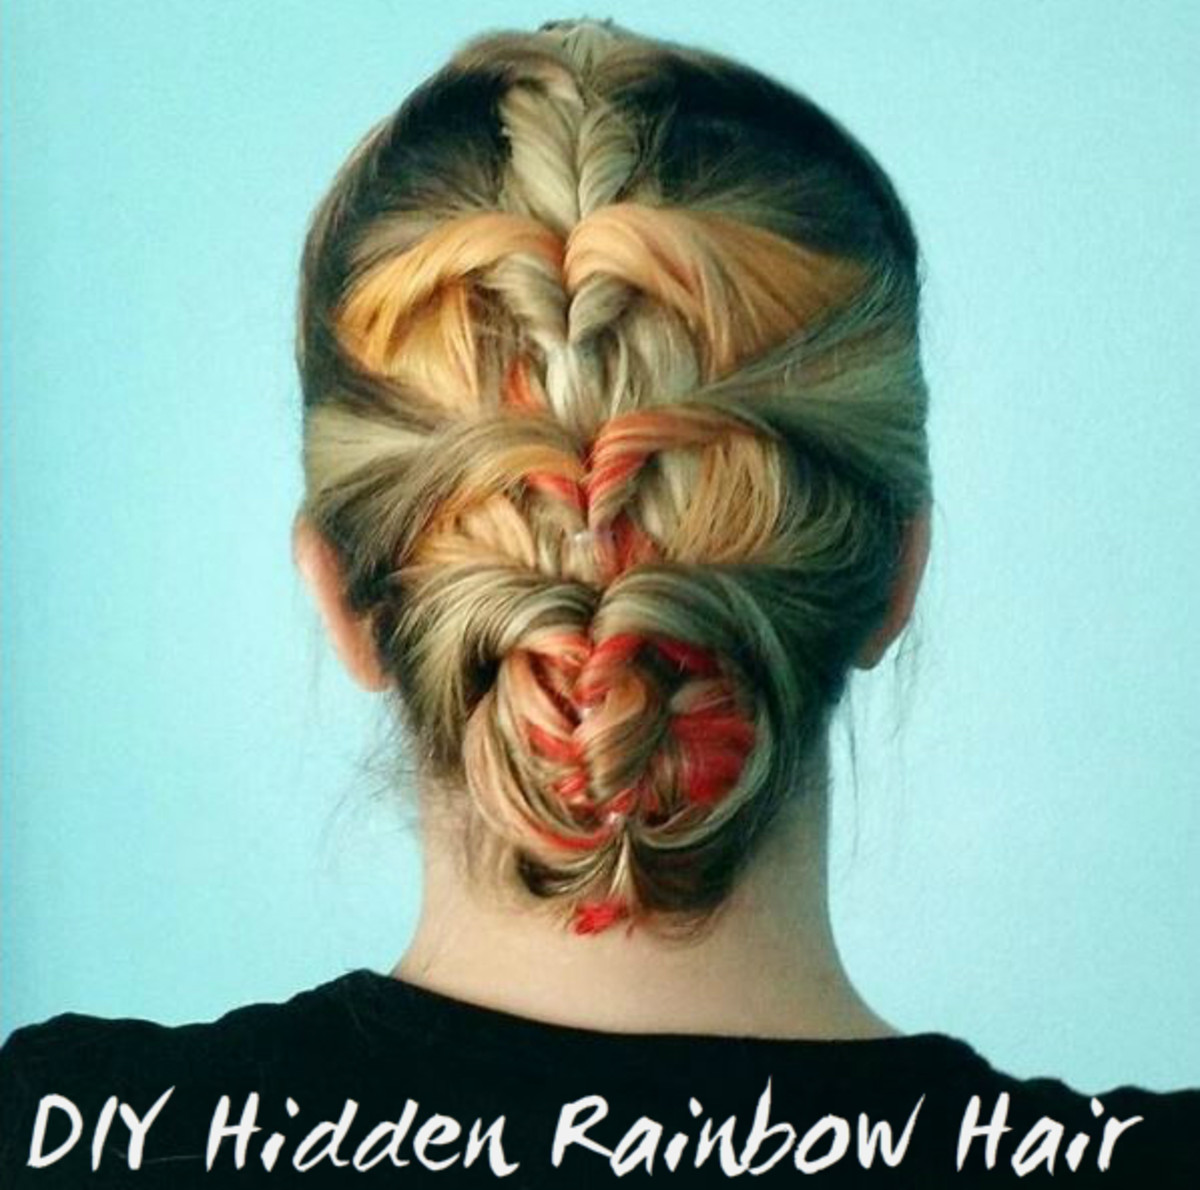 Hair DIY: How to Do Hidden Rainbow Hair